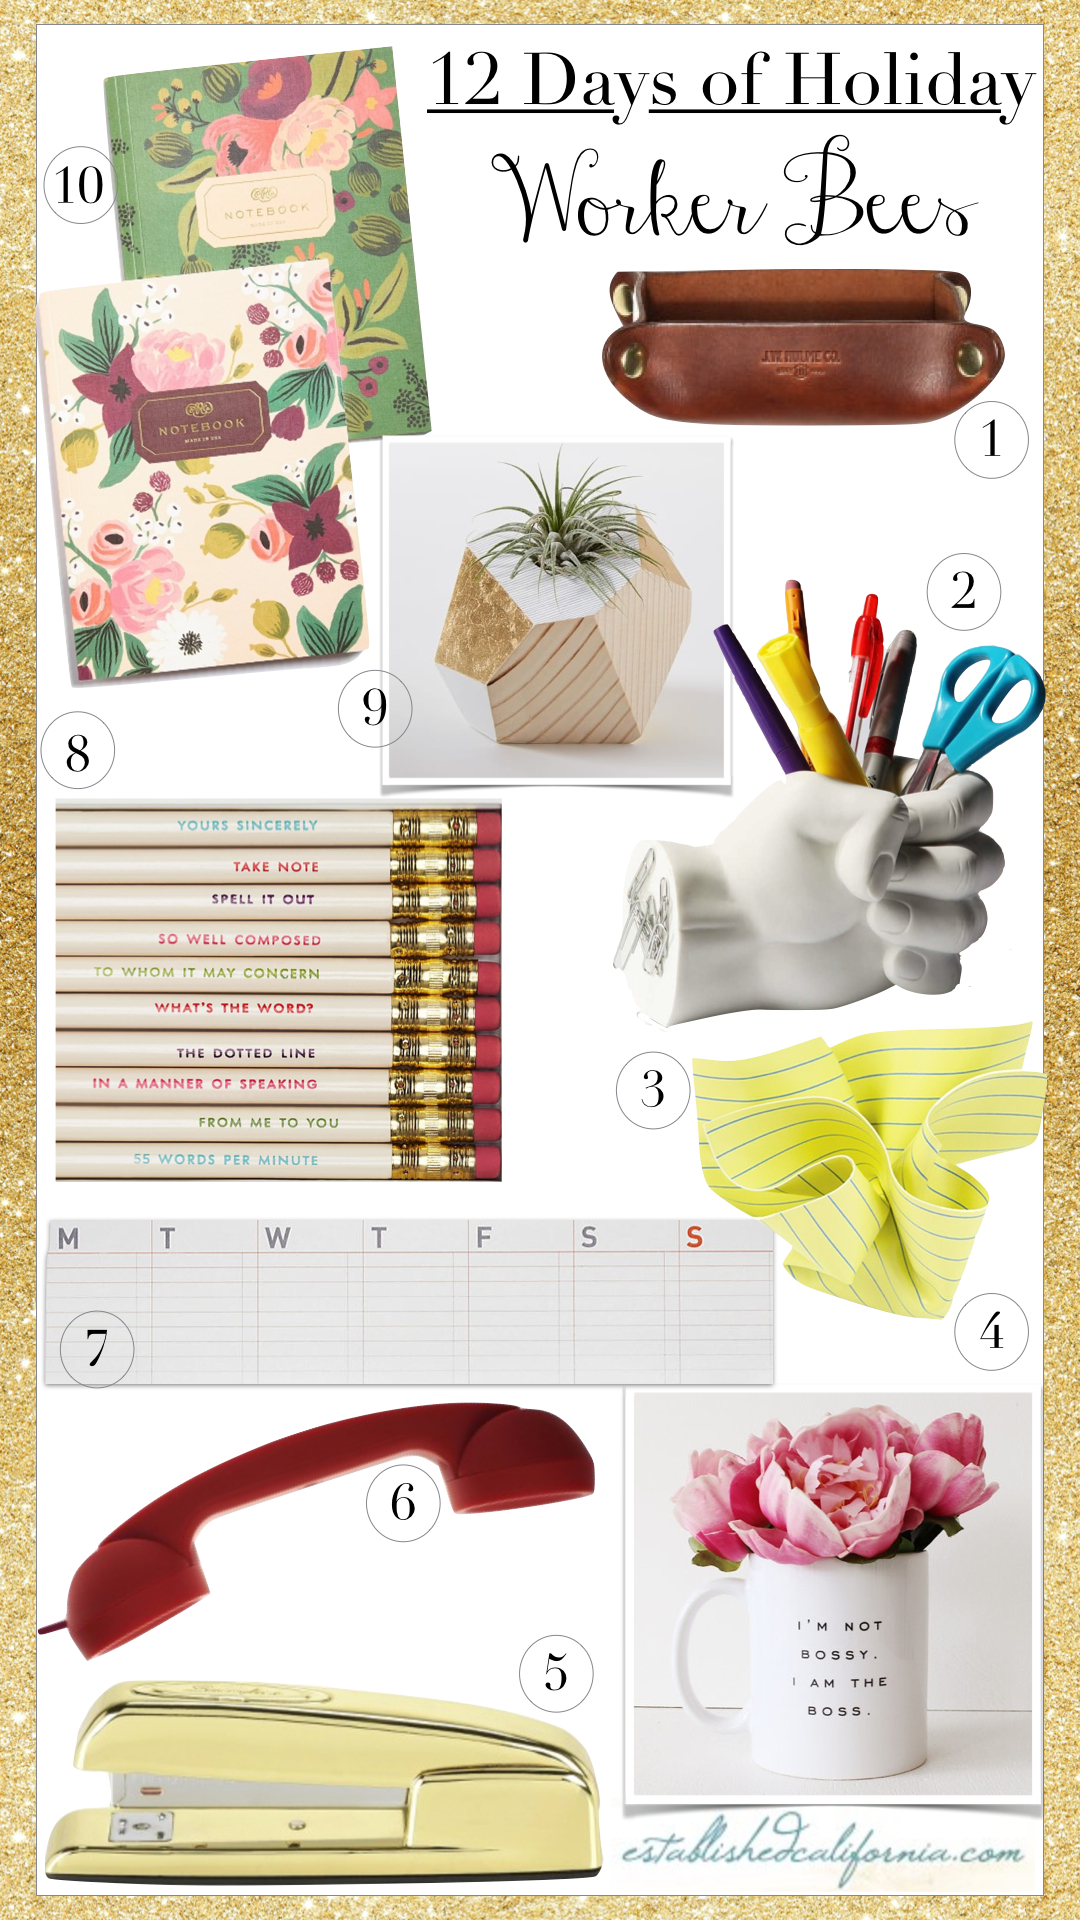 Worker Bees Gift Guide